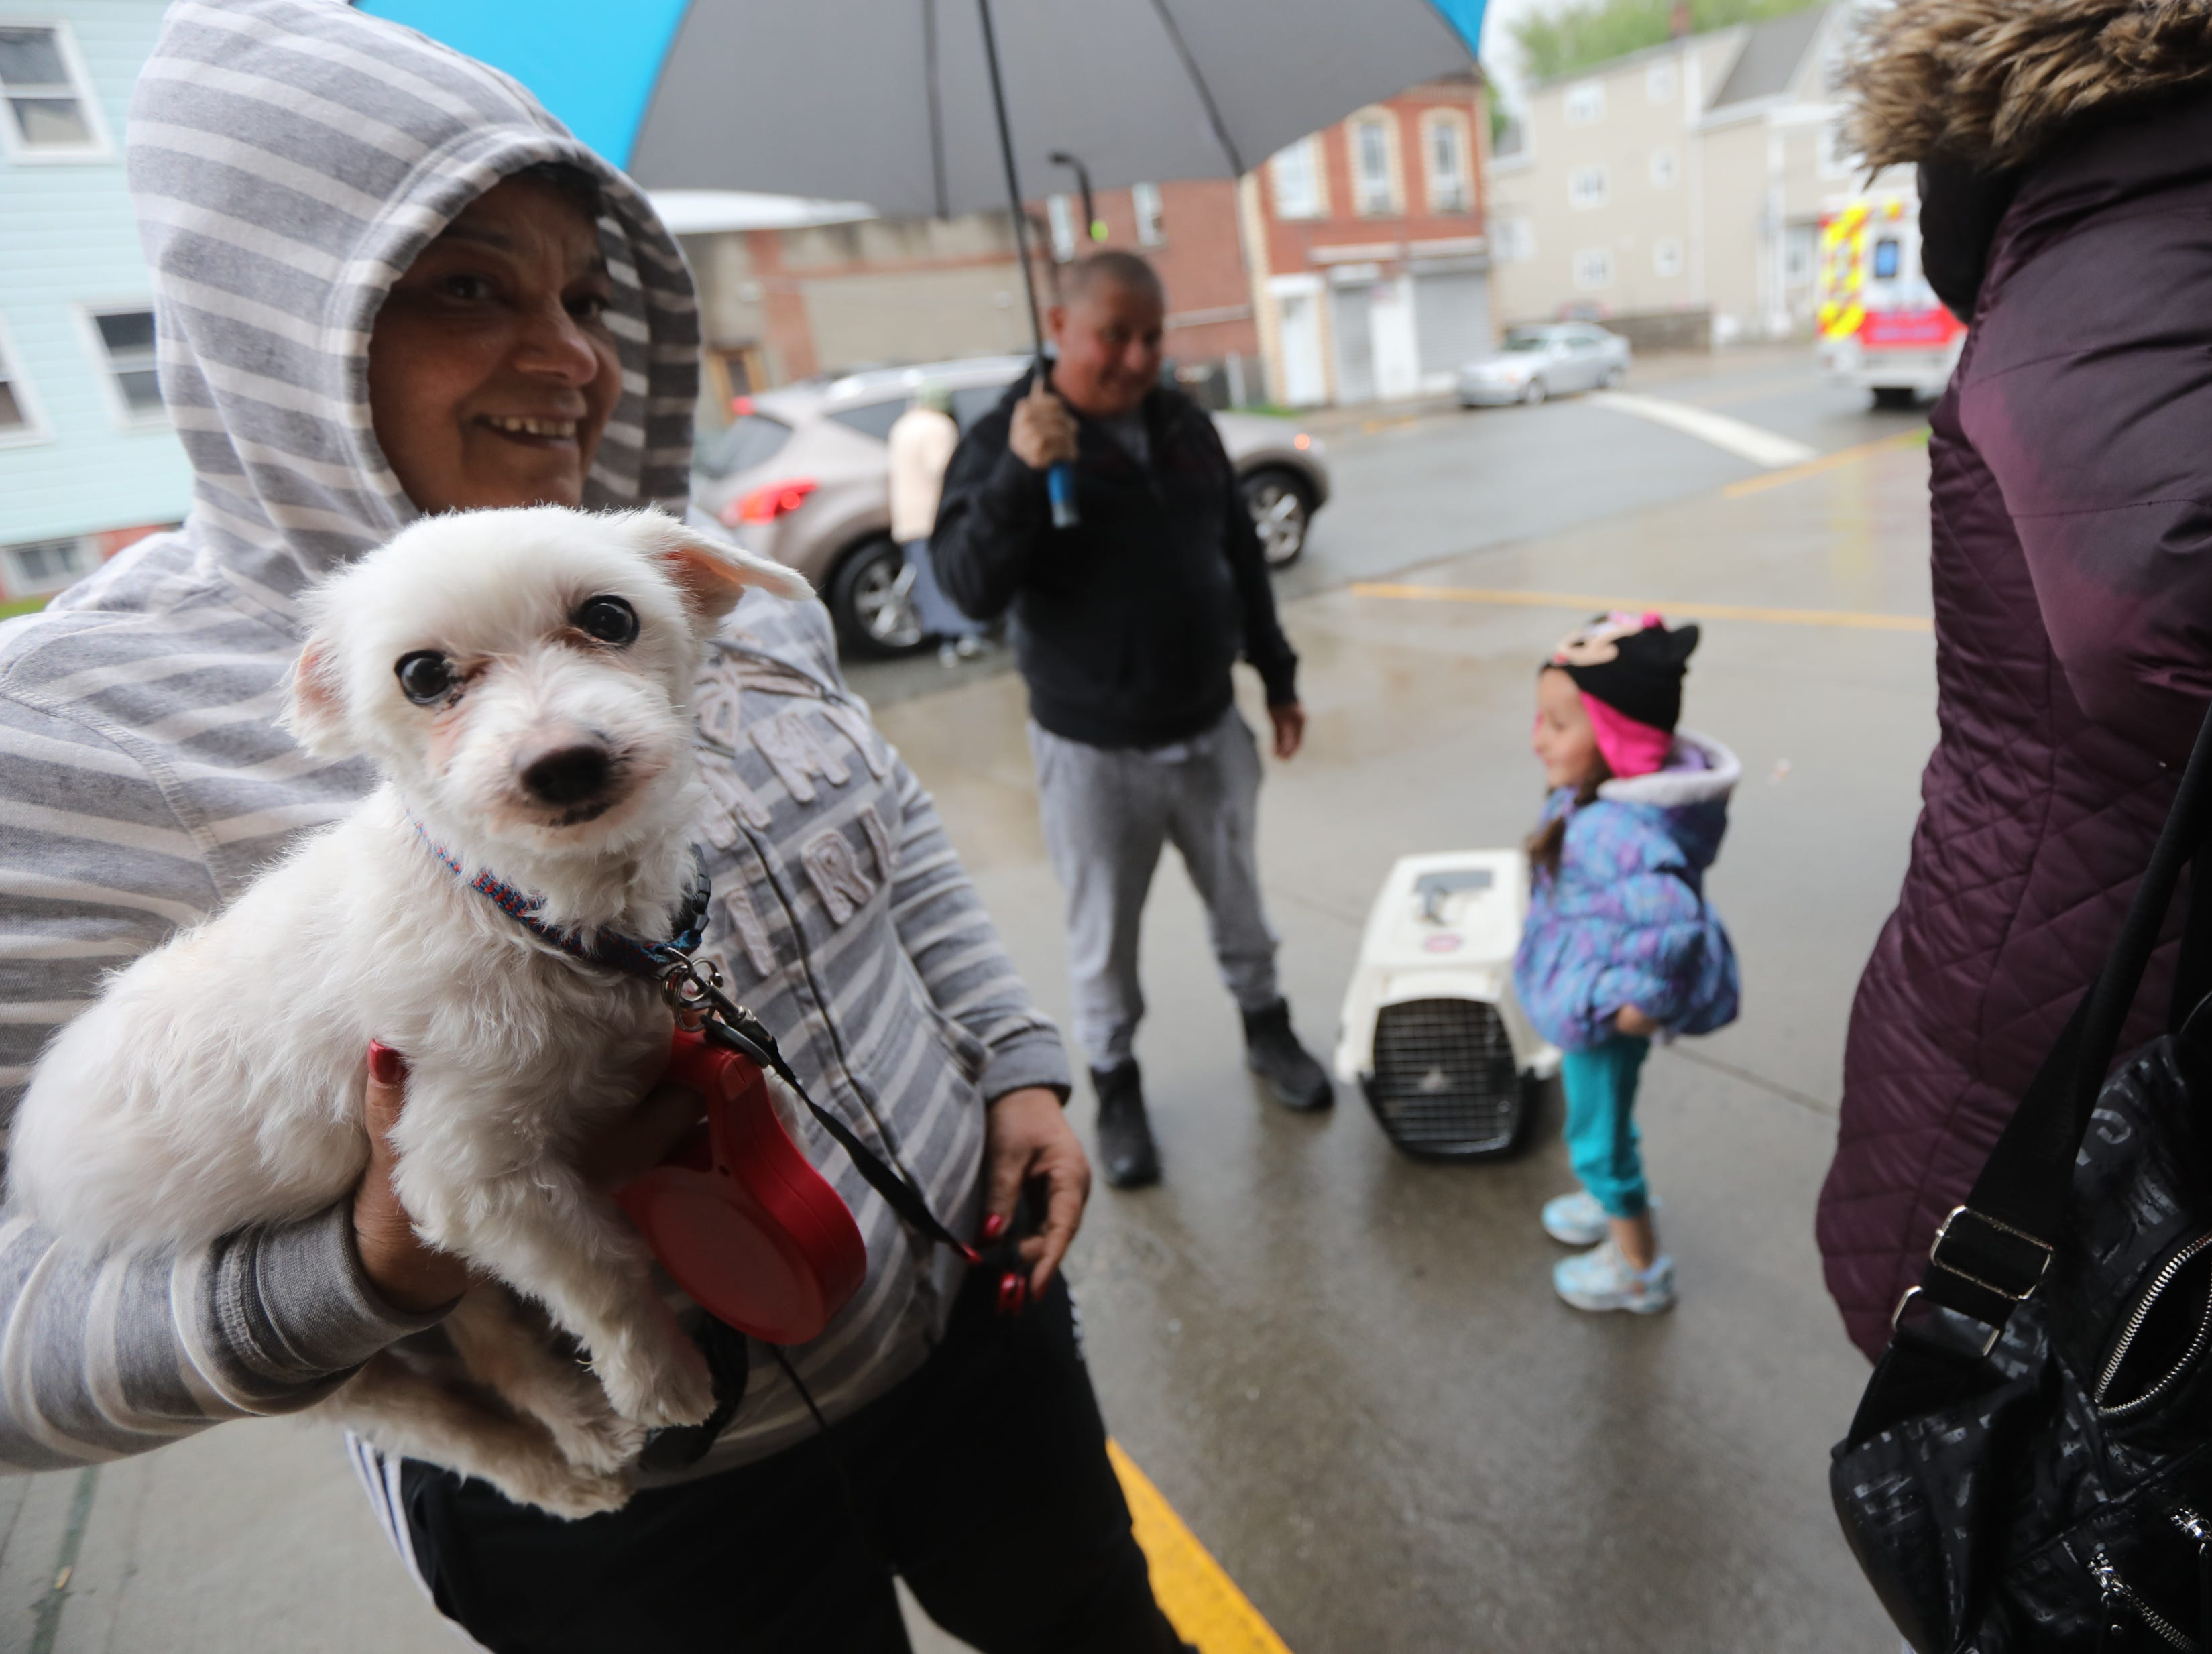 Ana Santiago, holds Doche, while on line to get him vaccinated. People came out to the Riverside Firehouse in Paterson, Tuesday, May 14, 2019, to get free rabies vaccinations for their cats and dogs.  The 44th annual clinic continues Thursday at 128 Getty Ave. and Friday at 300 McBride Ave. from 7-8pm.  It concludes over the weekend, Saturday from 12:30-1:30pm at Firehouse No.4 on Temple St.  Sunday it is back at Riverhouse Firehouse at East 16th St. and Lafayette from 10:30 until noon.